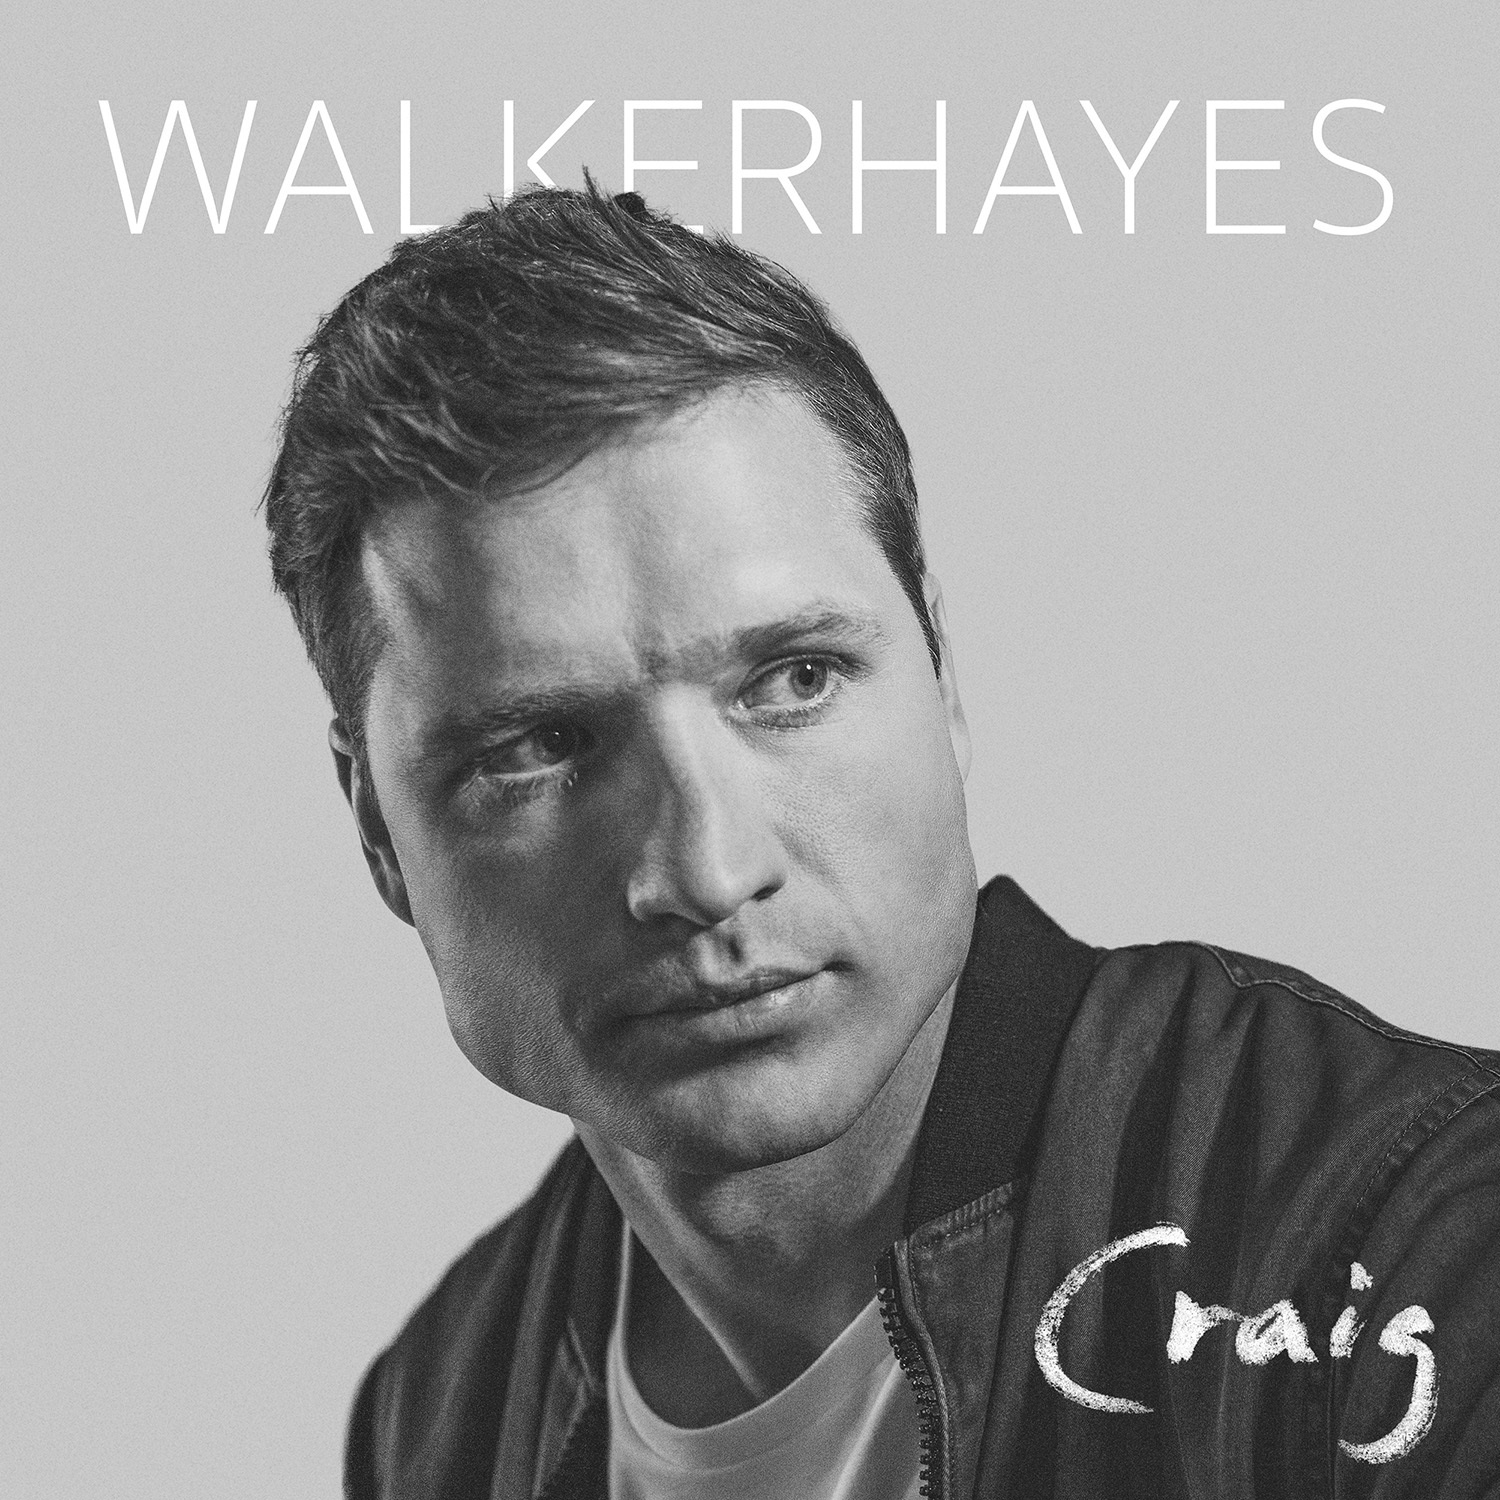 Home Walker Hayes Official Site